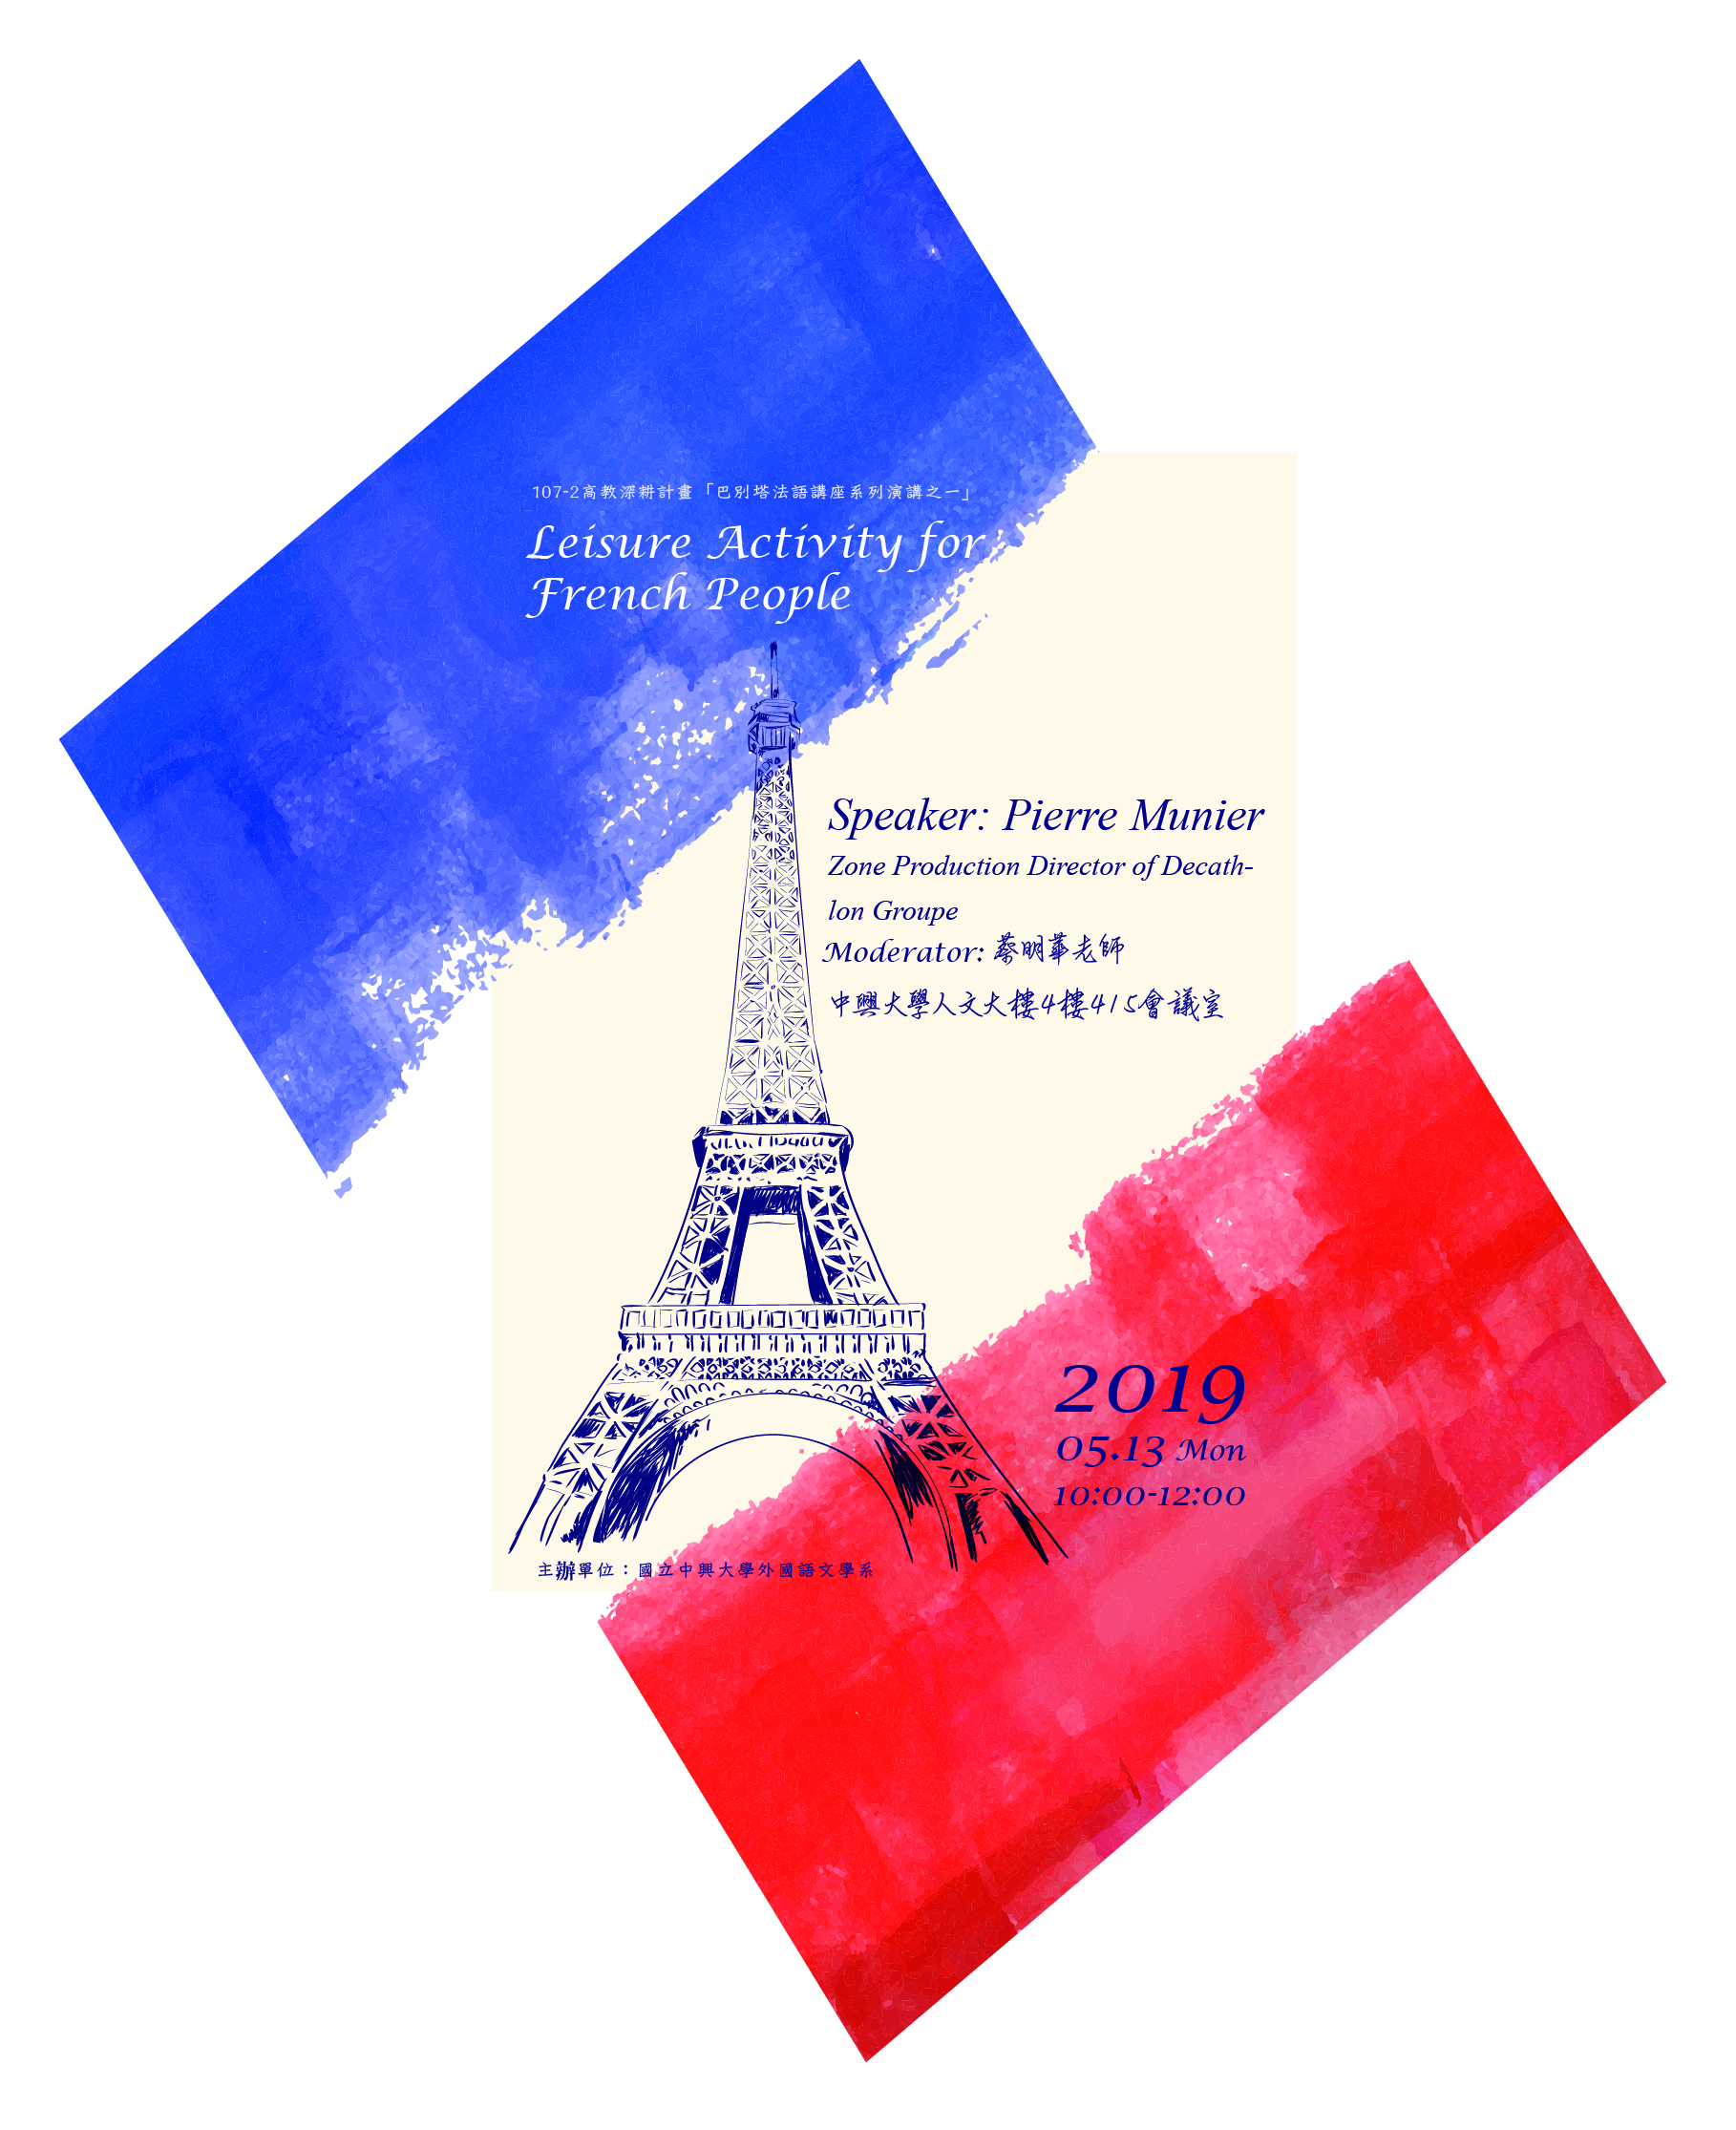 20190513leisure-activity-for-french-people